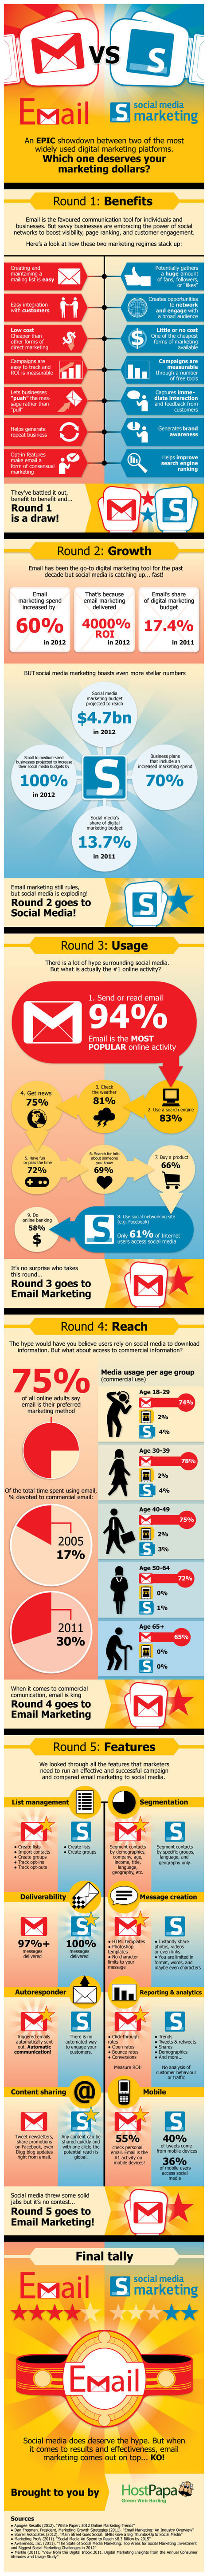 Email Marketing Knocks Out Social Media in 5 Rounds - HostPapa | #TheMarketingTechAlert | The Digital Landscape | Scoop.it